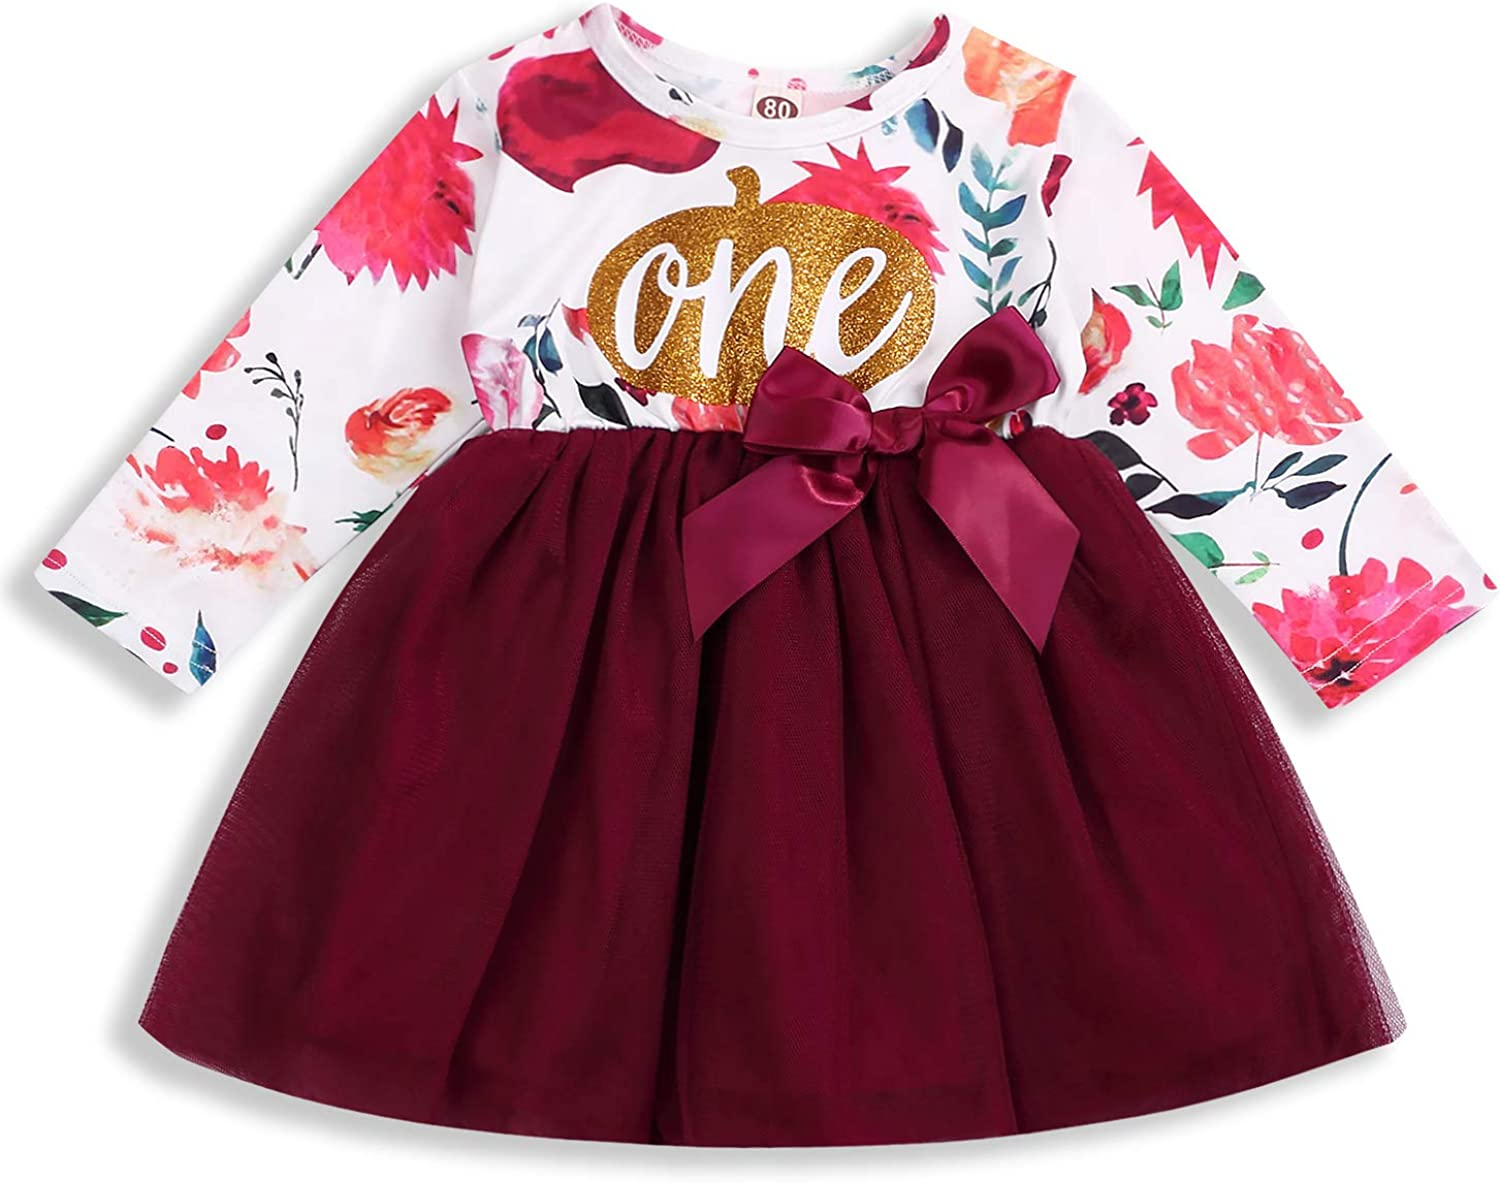 Toddler Baby Girl Skirts Sets Birthday Tutu Dress Floral Print Bowknot Long Sleeve Fall Outfits 1-5T Clothes